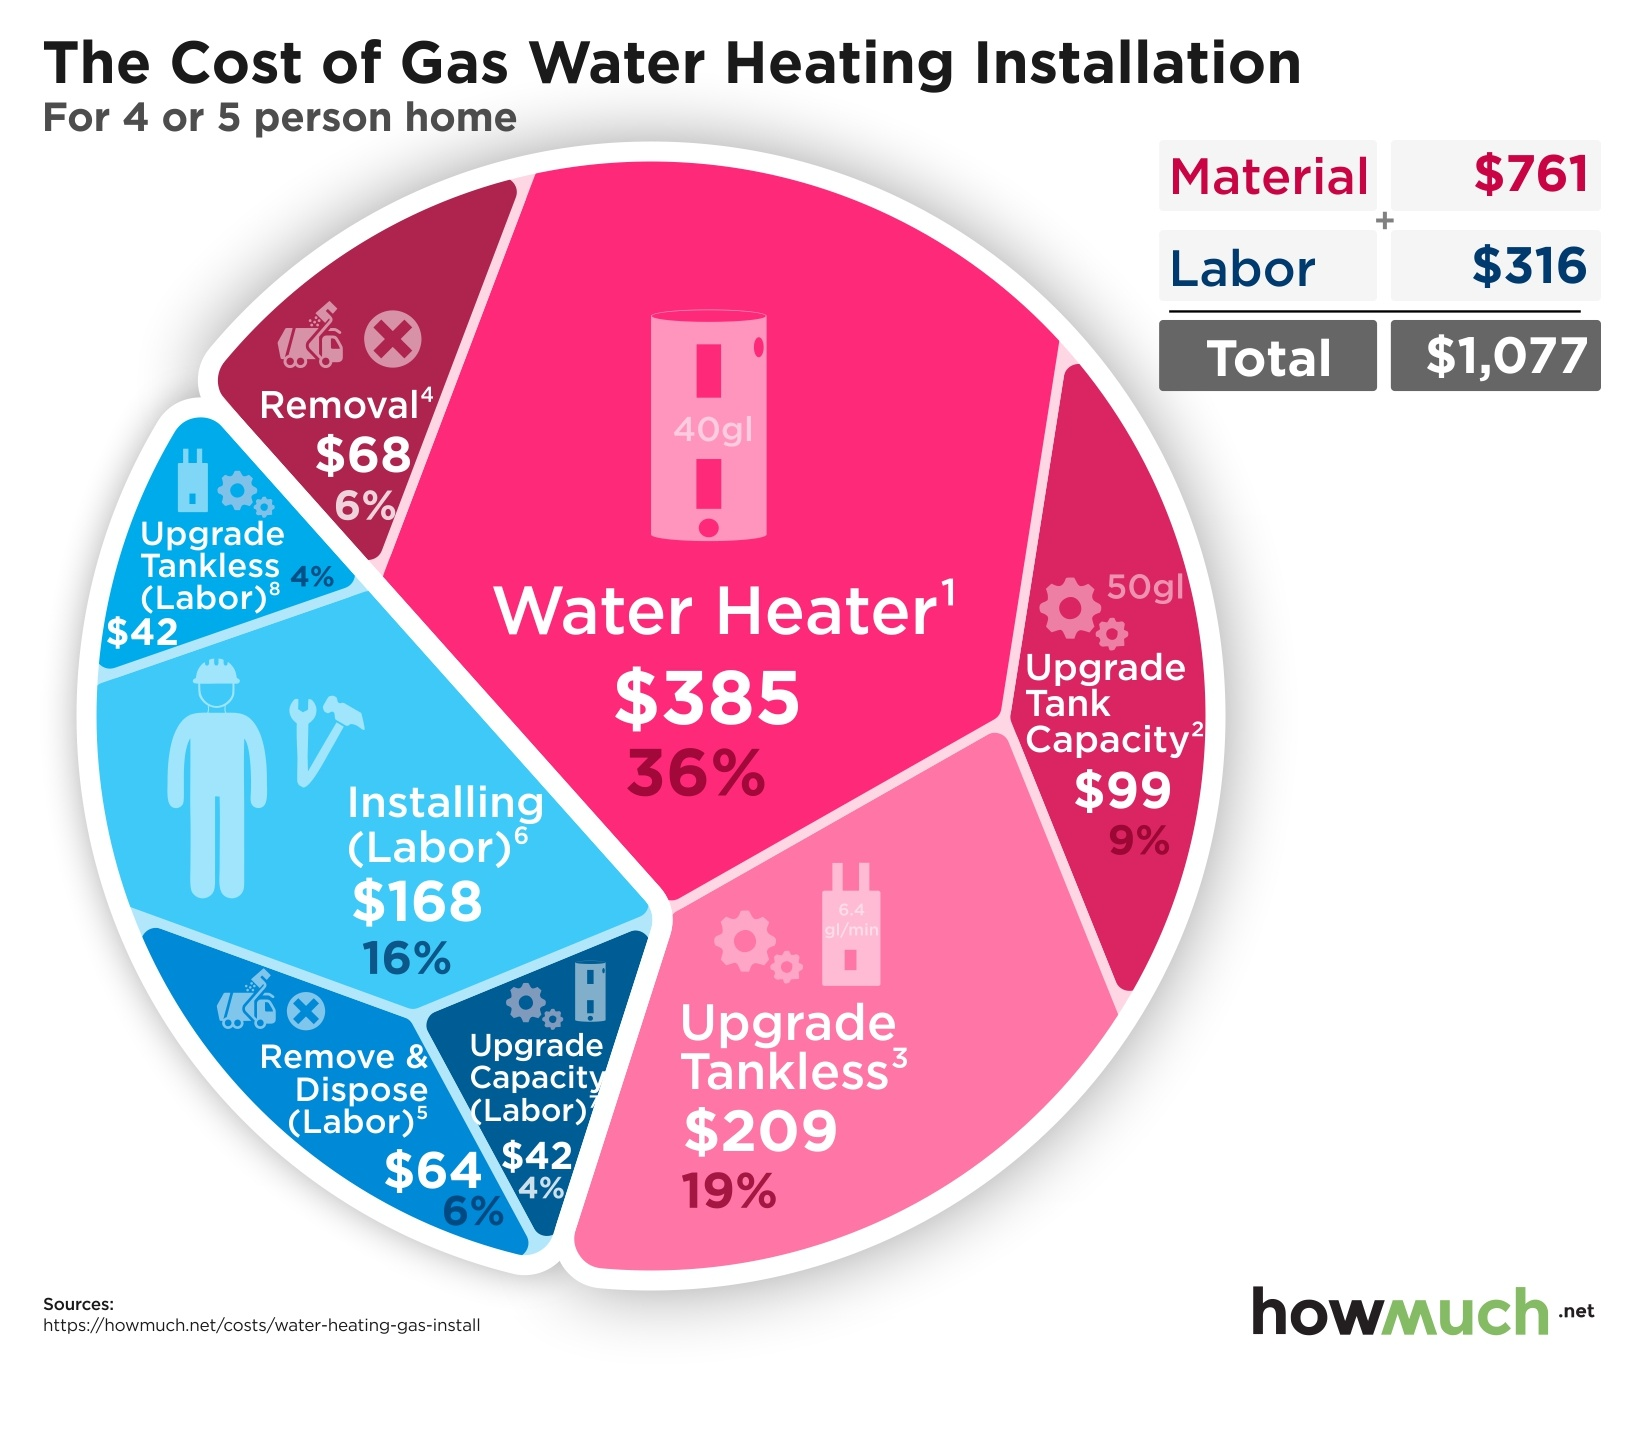 The Cost of Gas Water Heating Installation